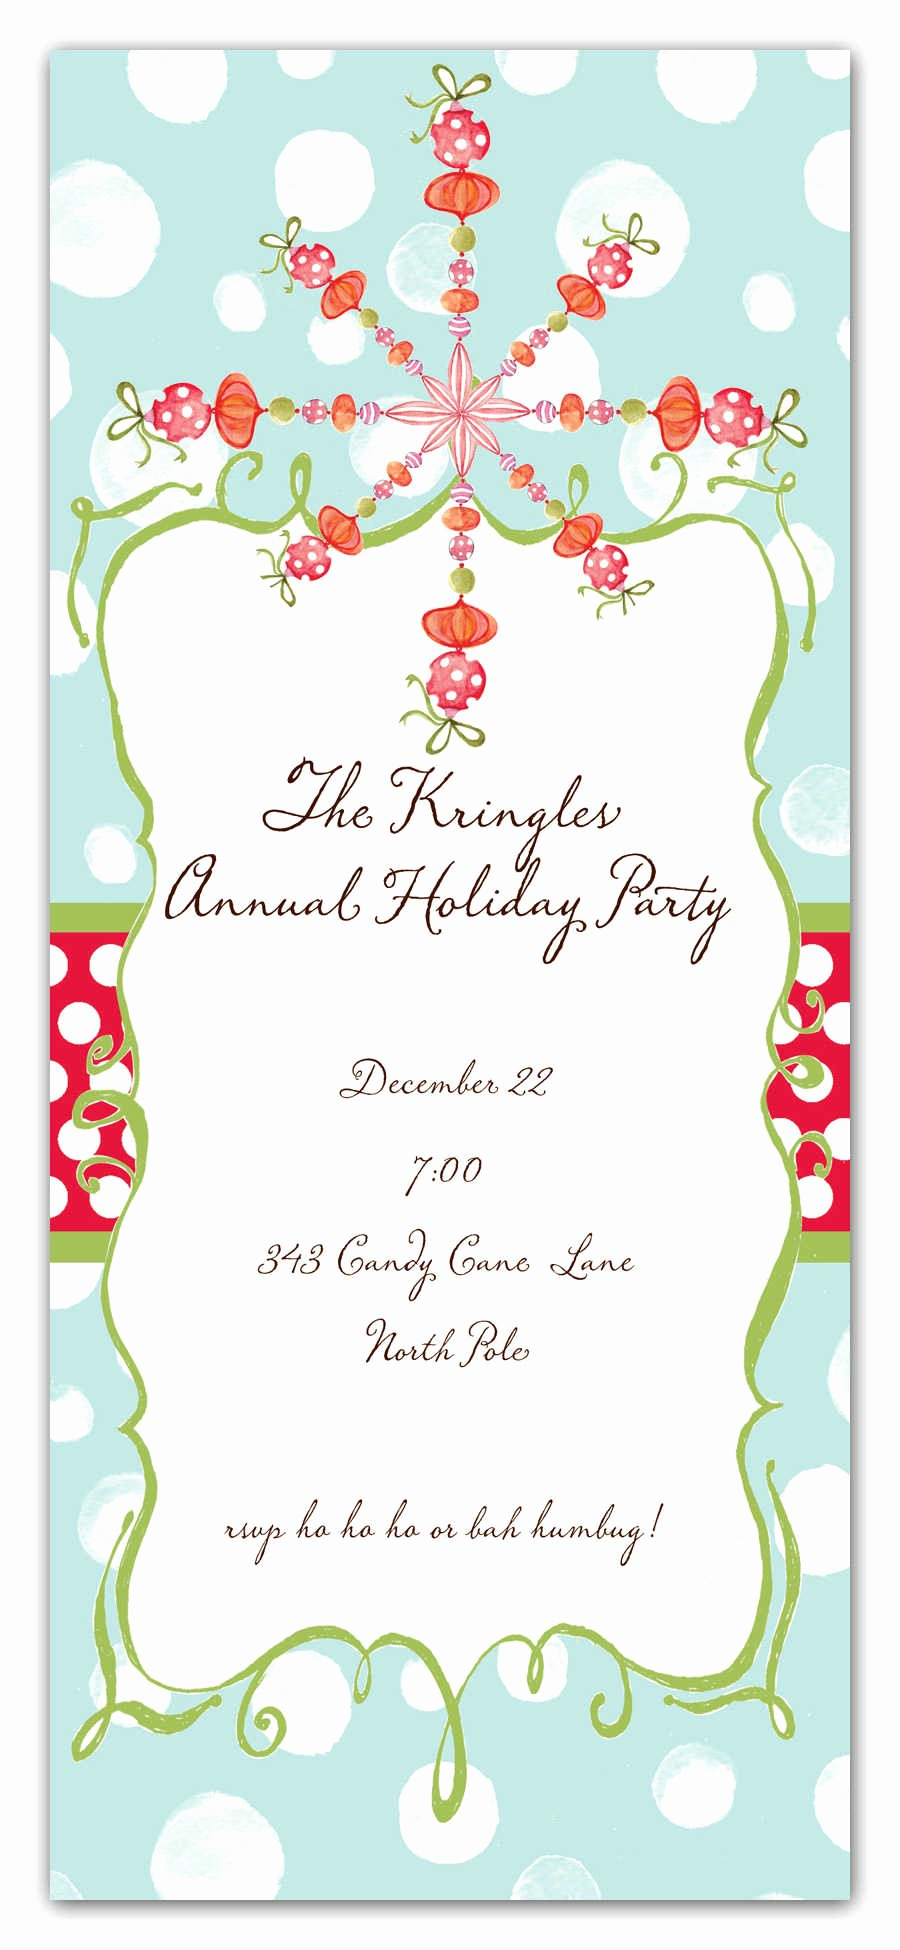 Christmas Invitations Templates Free Microsoft Inspirational Christmas Invitation Templates